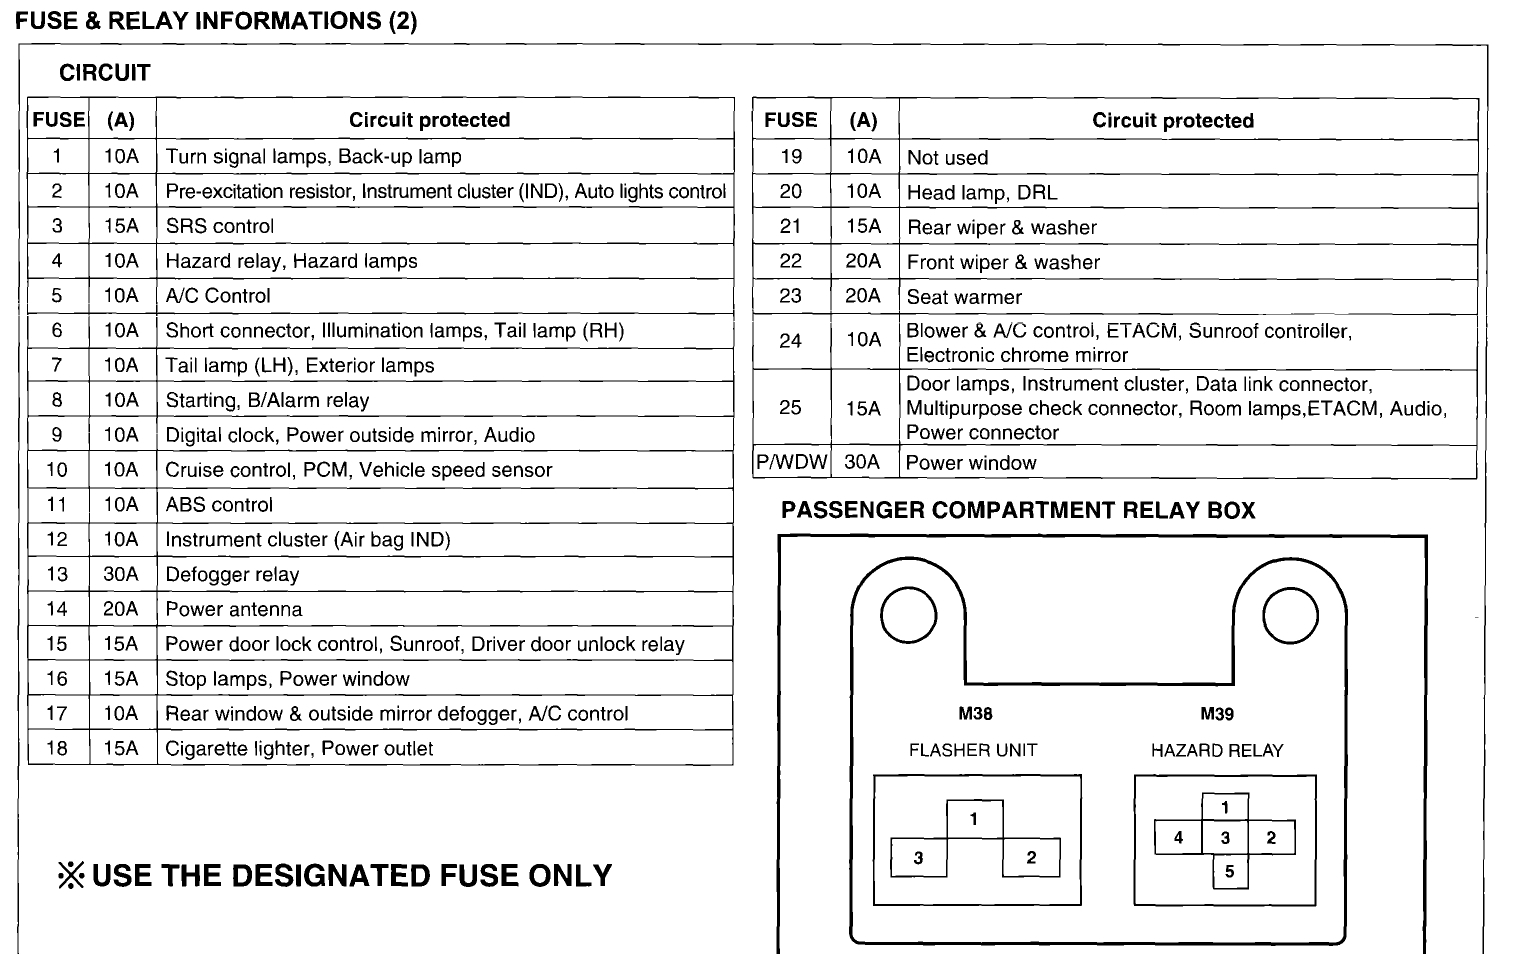 2002 Hyundai Elantra Fuse Diagram Wiring Will Be A Thing 2004 Radio Stereo Chevy Box Location